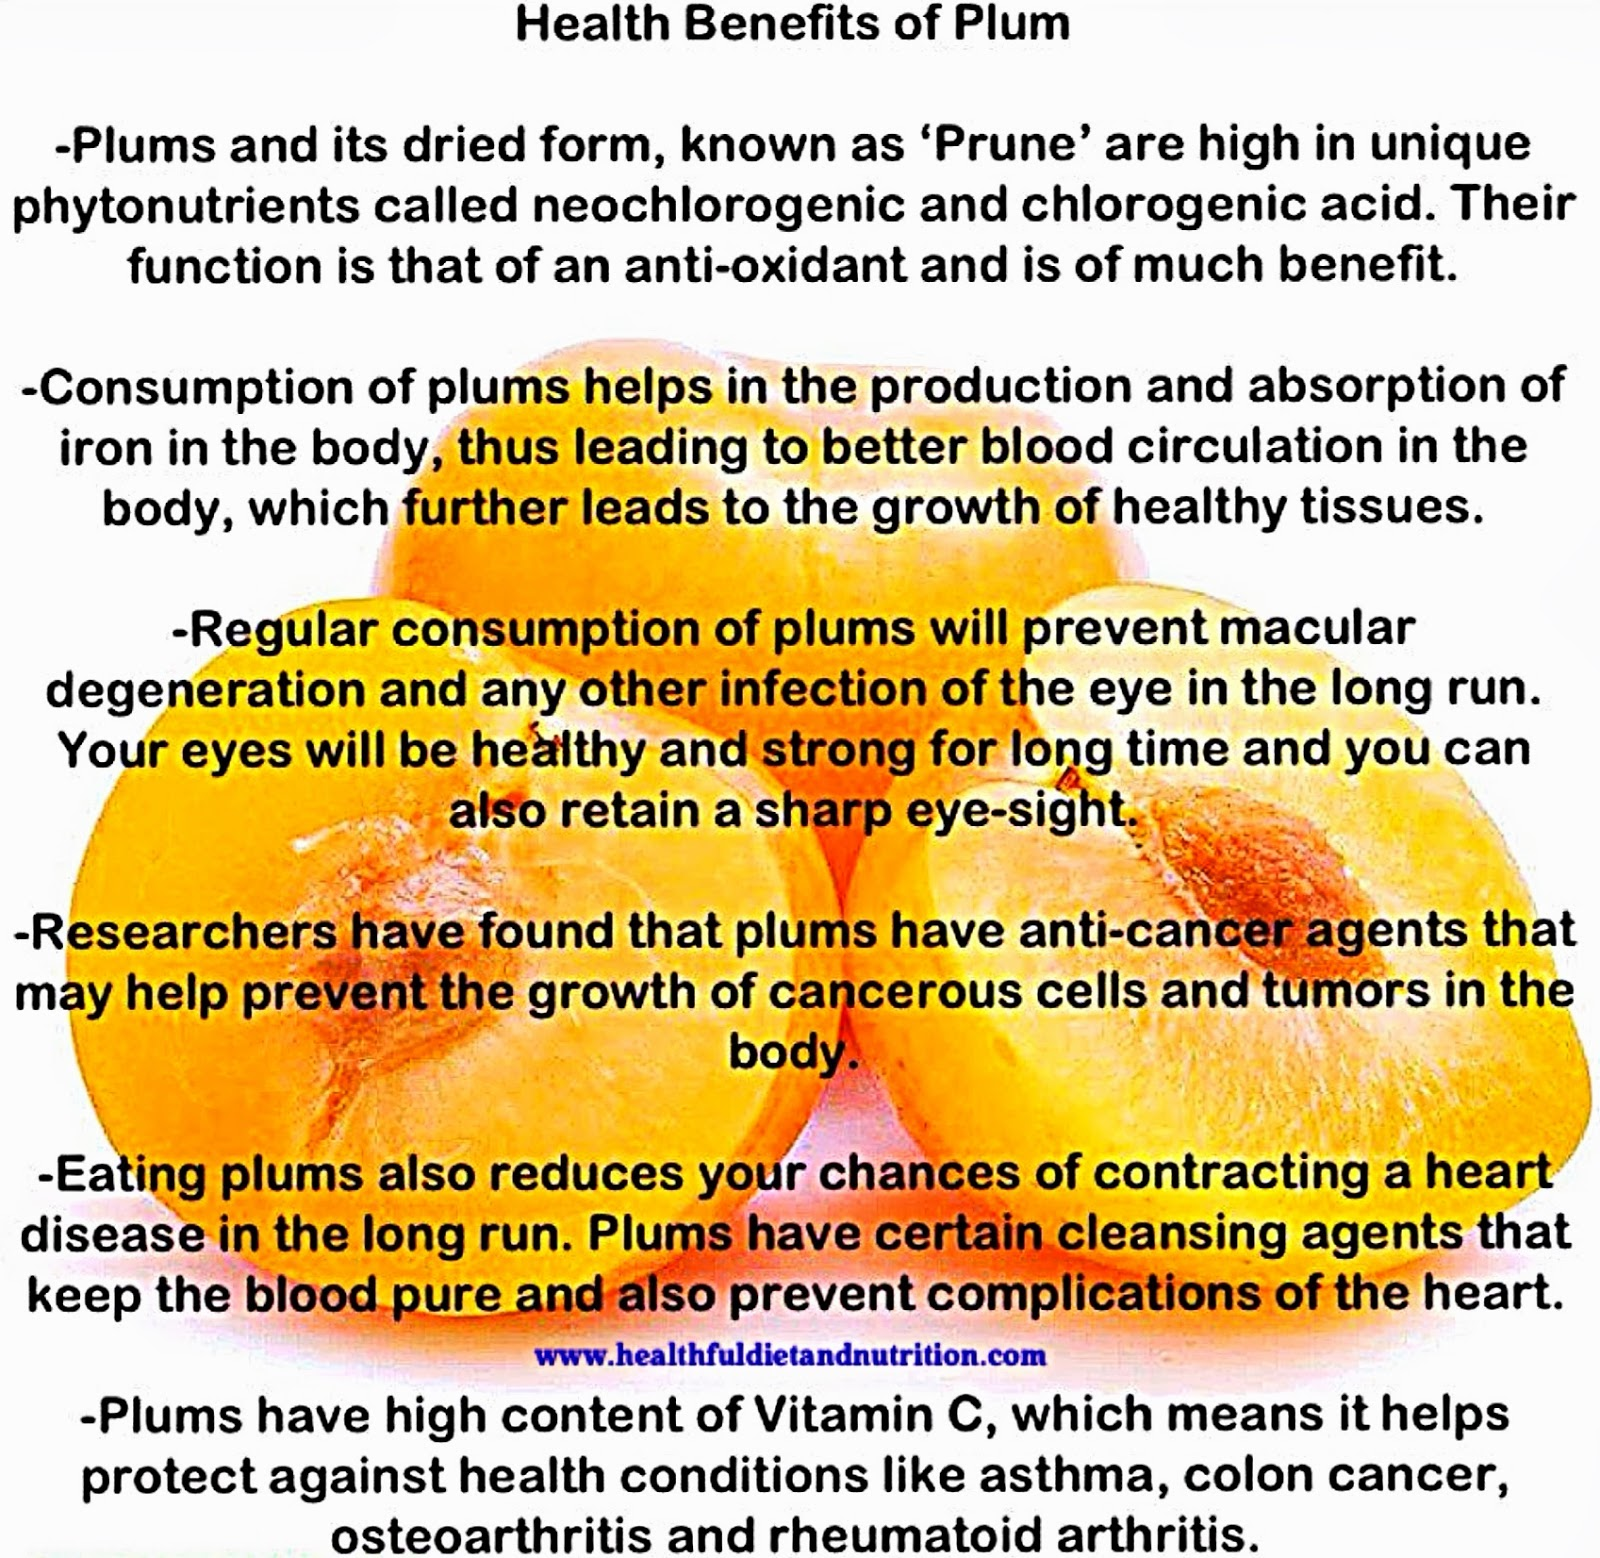 Health Benefits of Plum Fruit